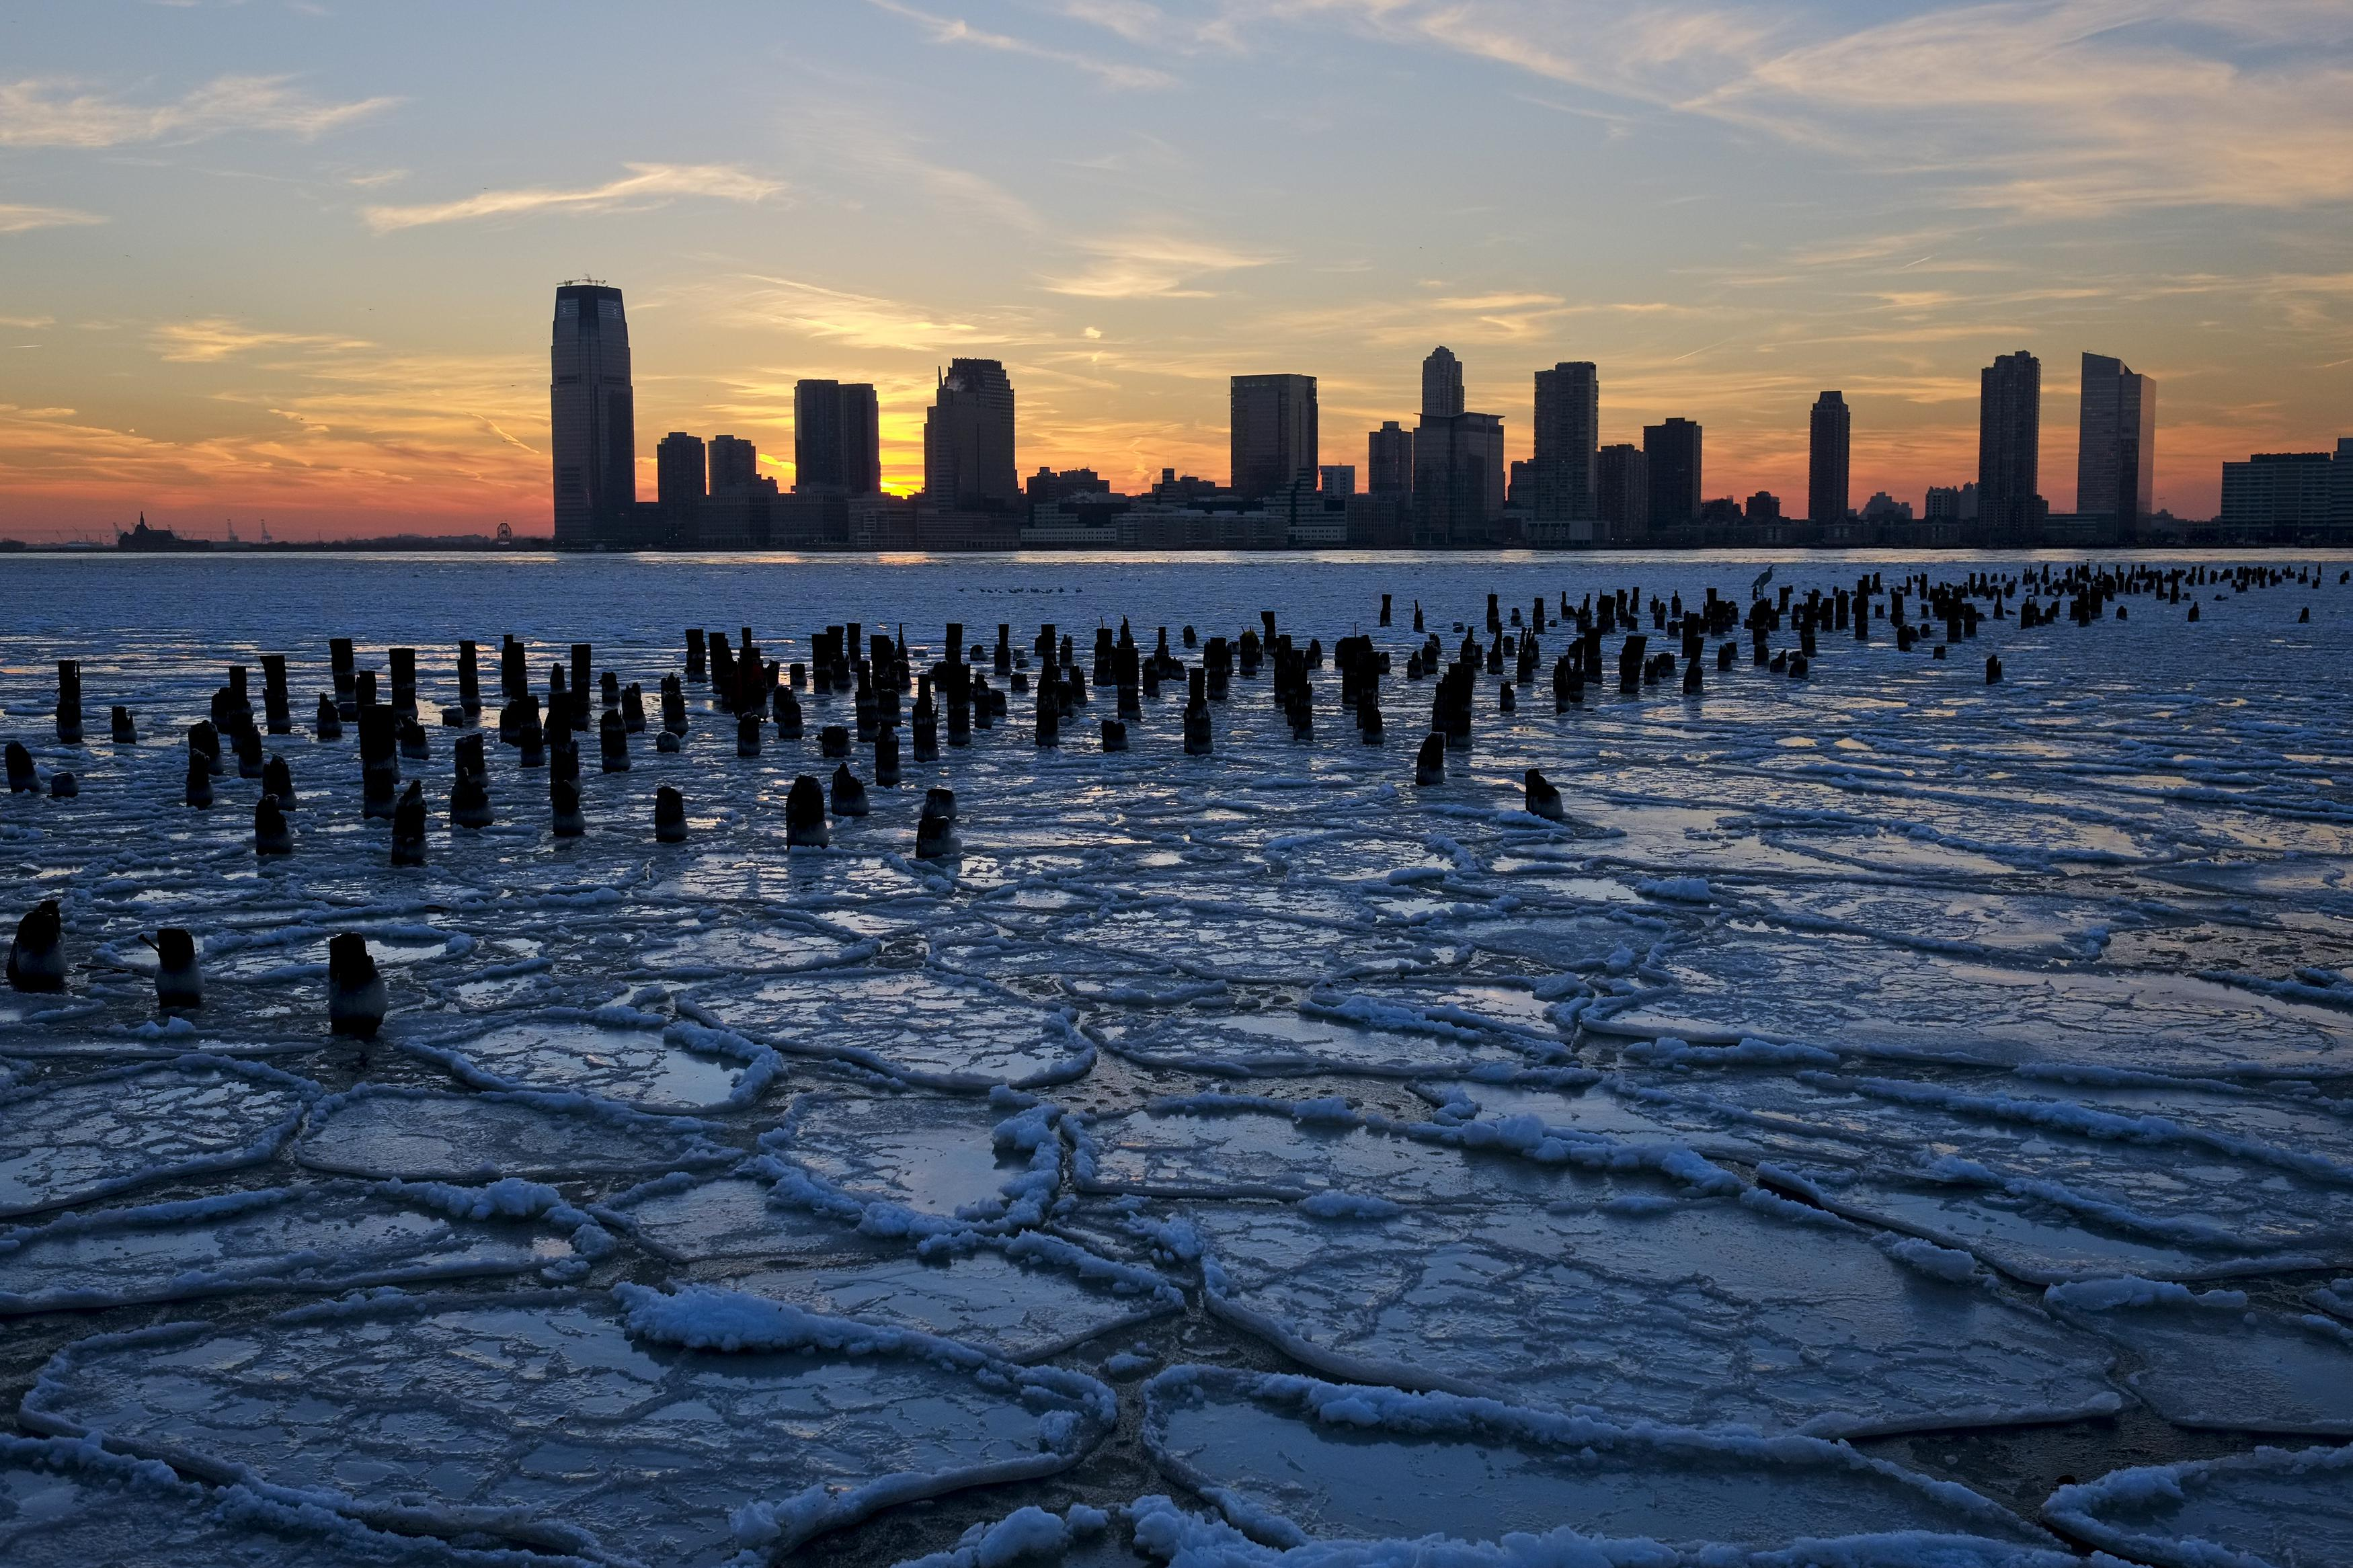 Ice floes fill the Hudson River as the New Jersey waterfront is seen during sunset in New York City.